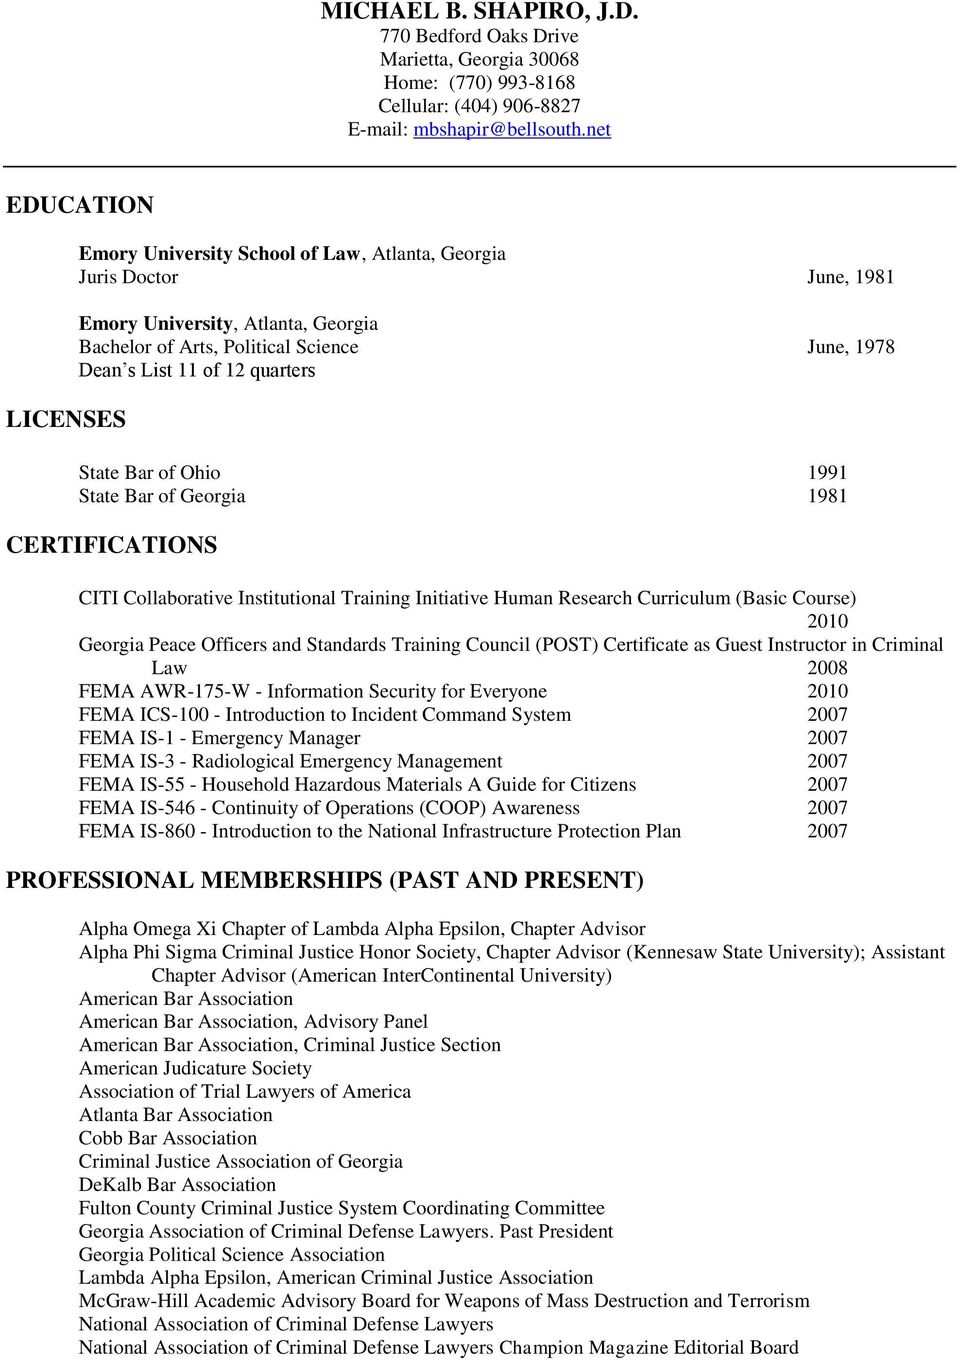 quarters State Bar of Ohio 1991 State Bar of Georgia 1981 CERTIFICATIONS CITI Collaborative Institutional Training Initiative Human Research Curriculum (Basic Course) 2010 Georgia Peace Officers and